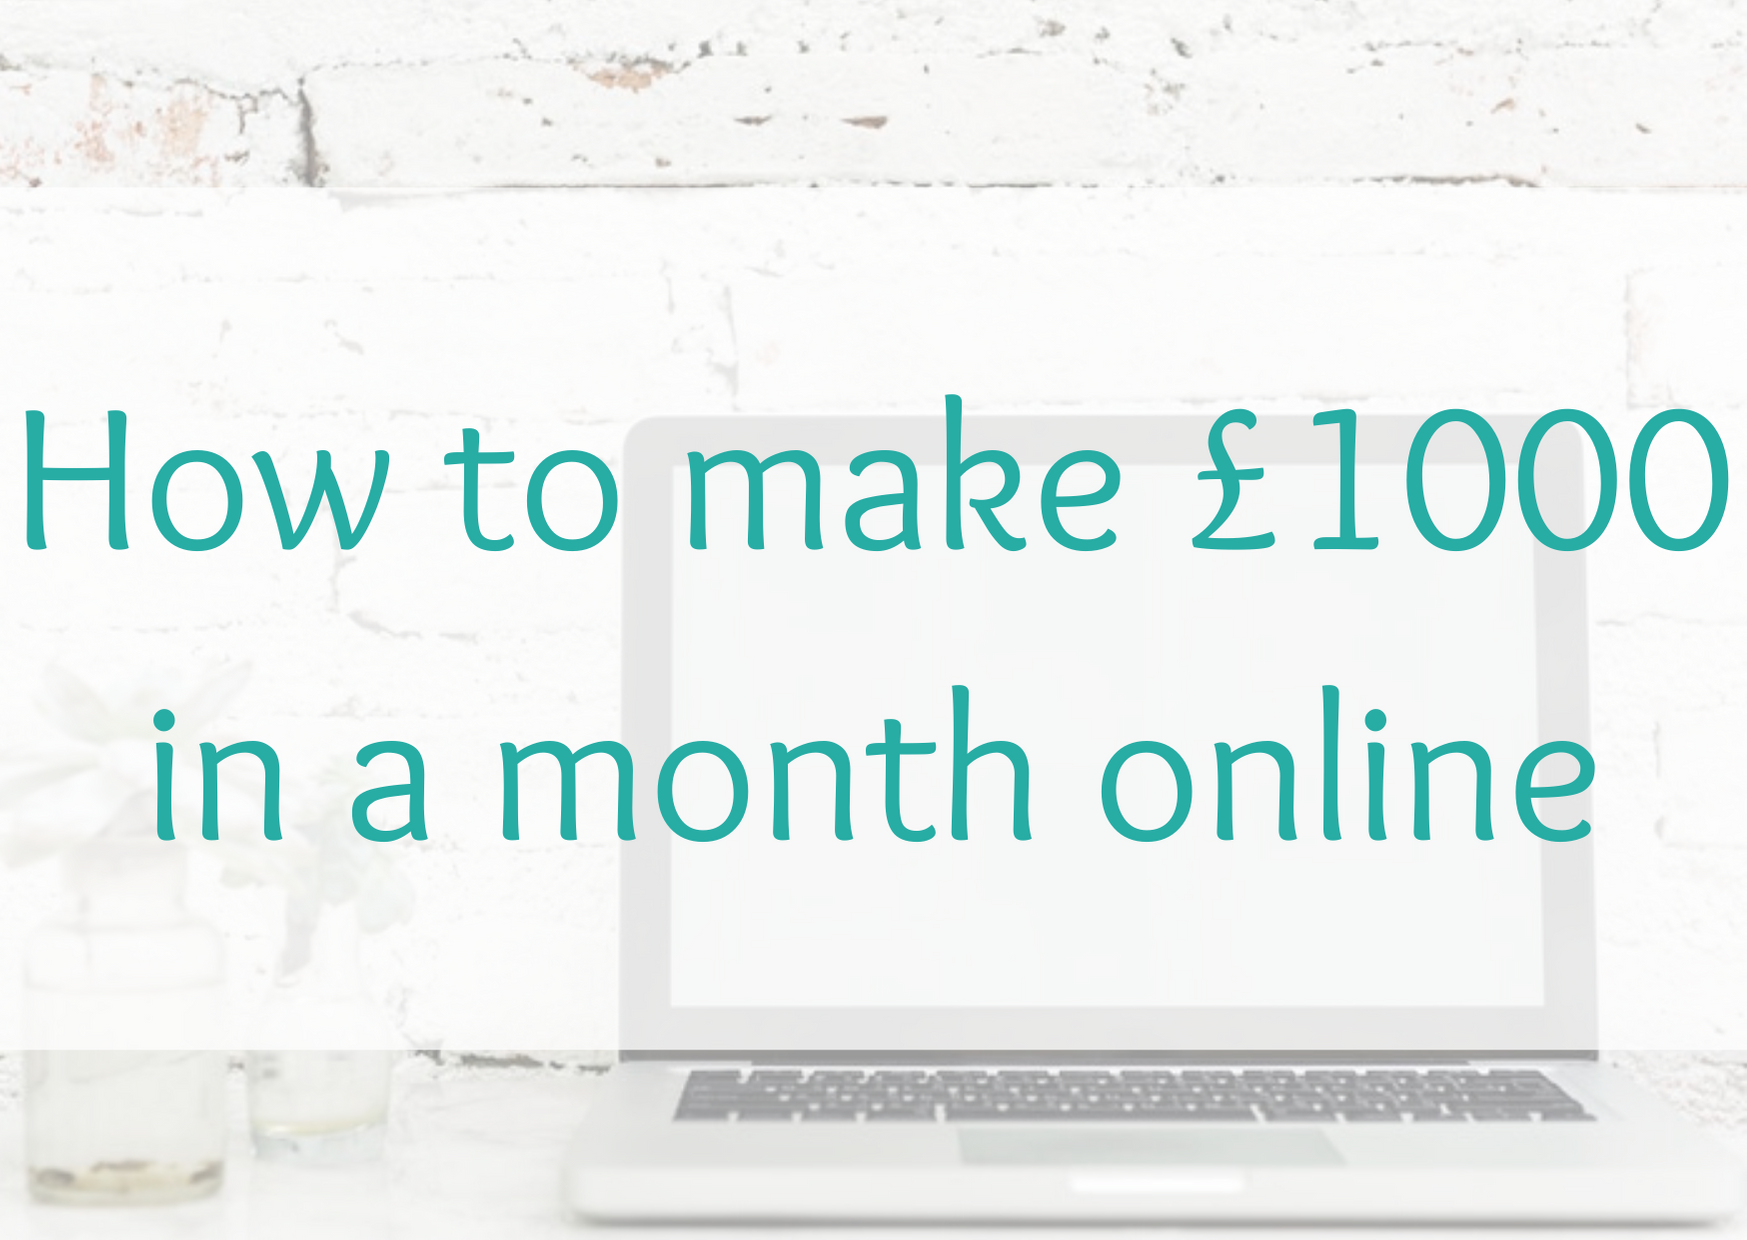 How to make £1000 in a month online